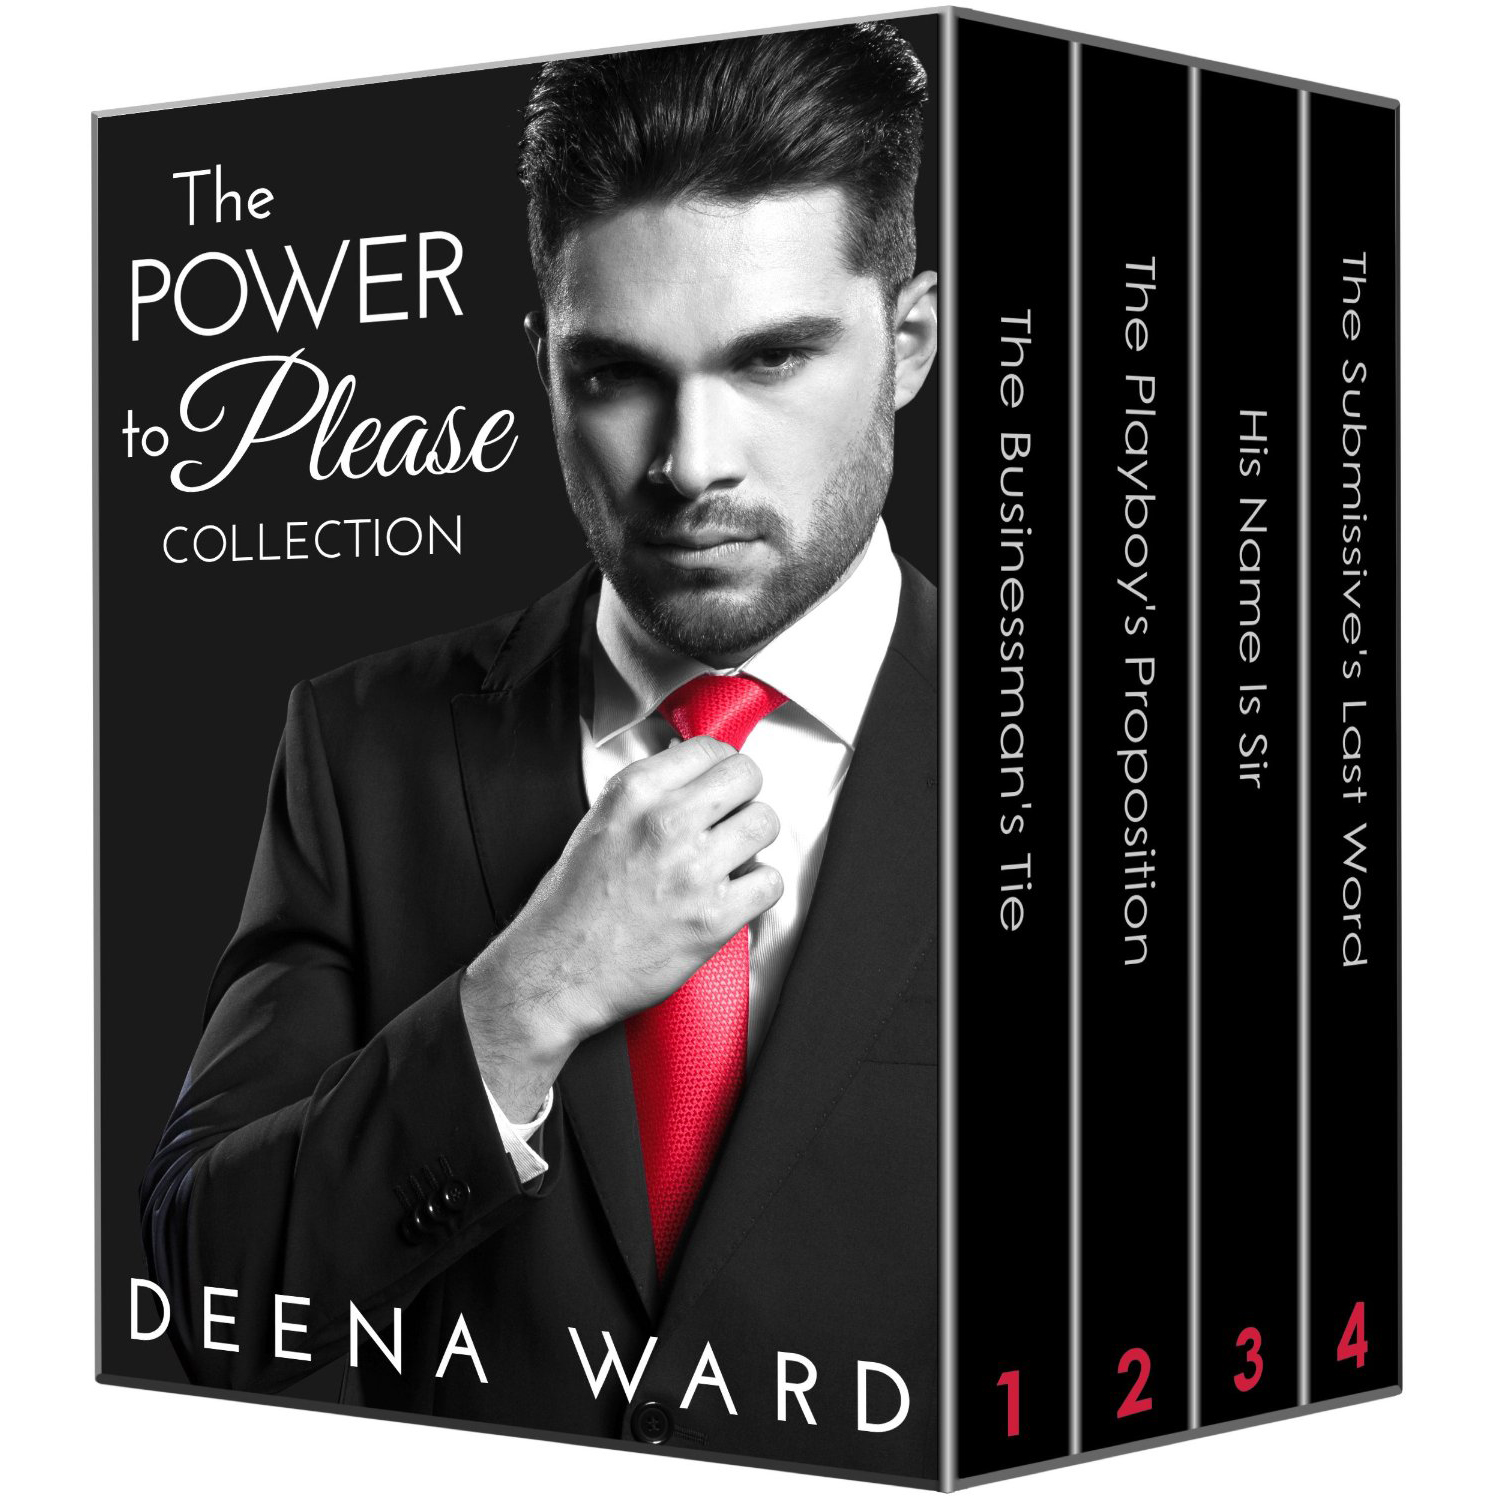 The Power to Please Collection by Deena Ward